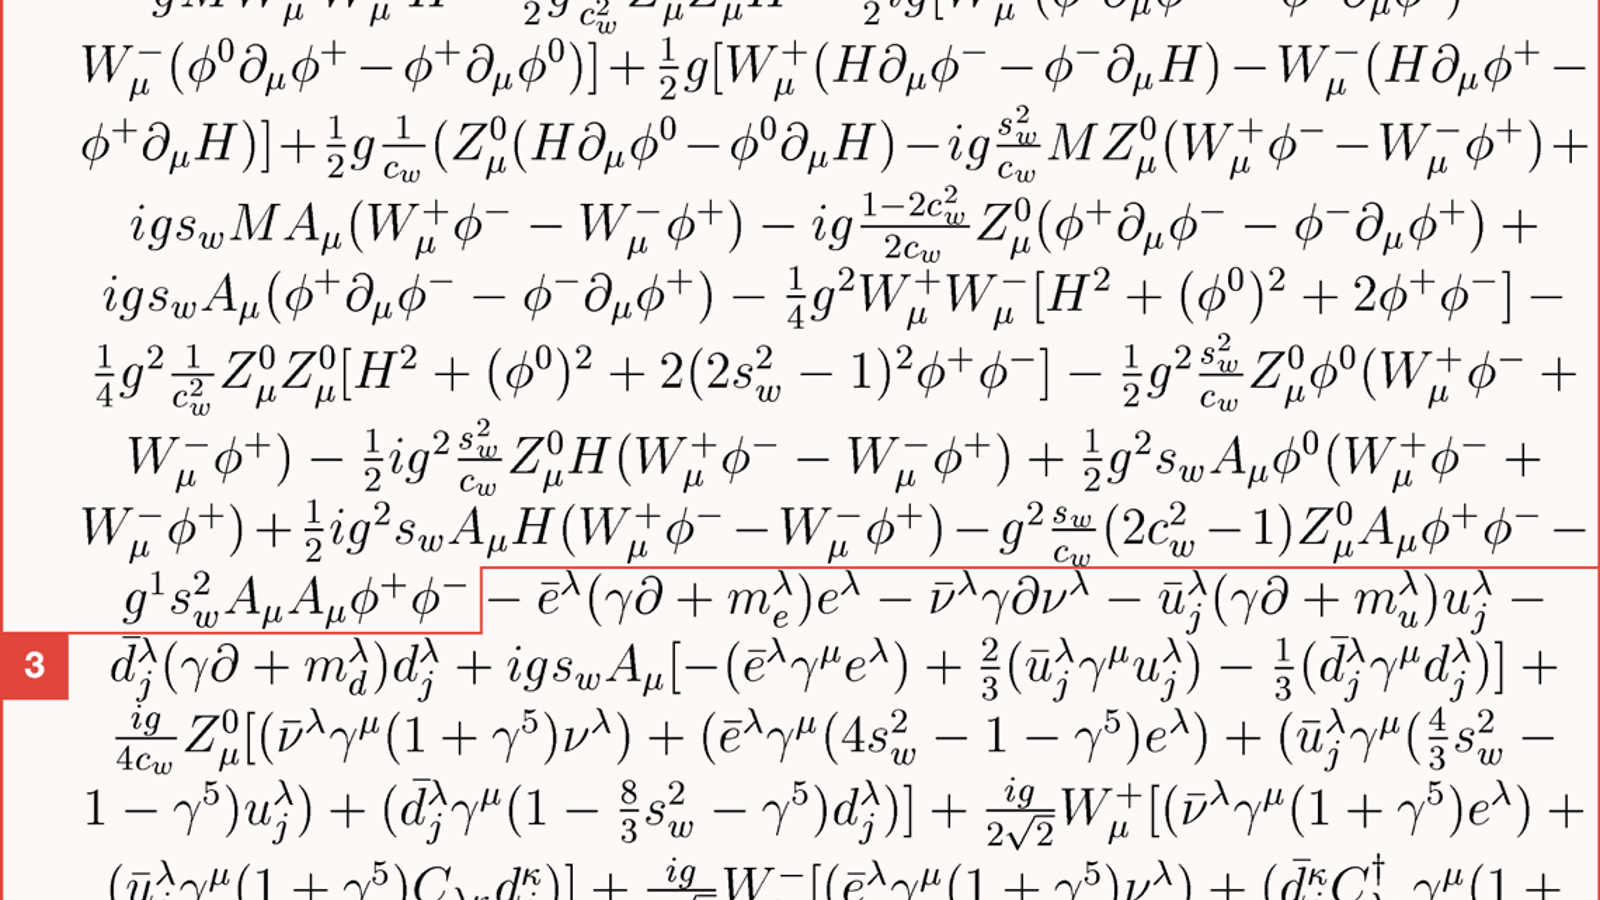 standard model lagrangian short pdf